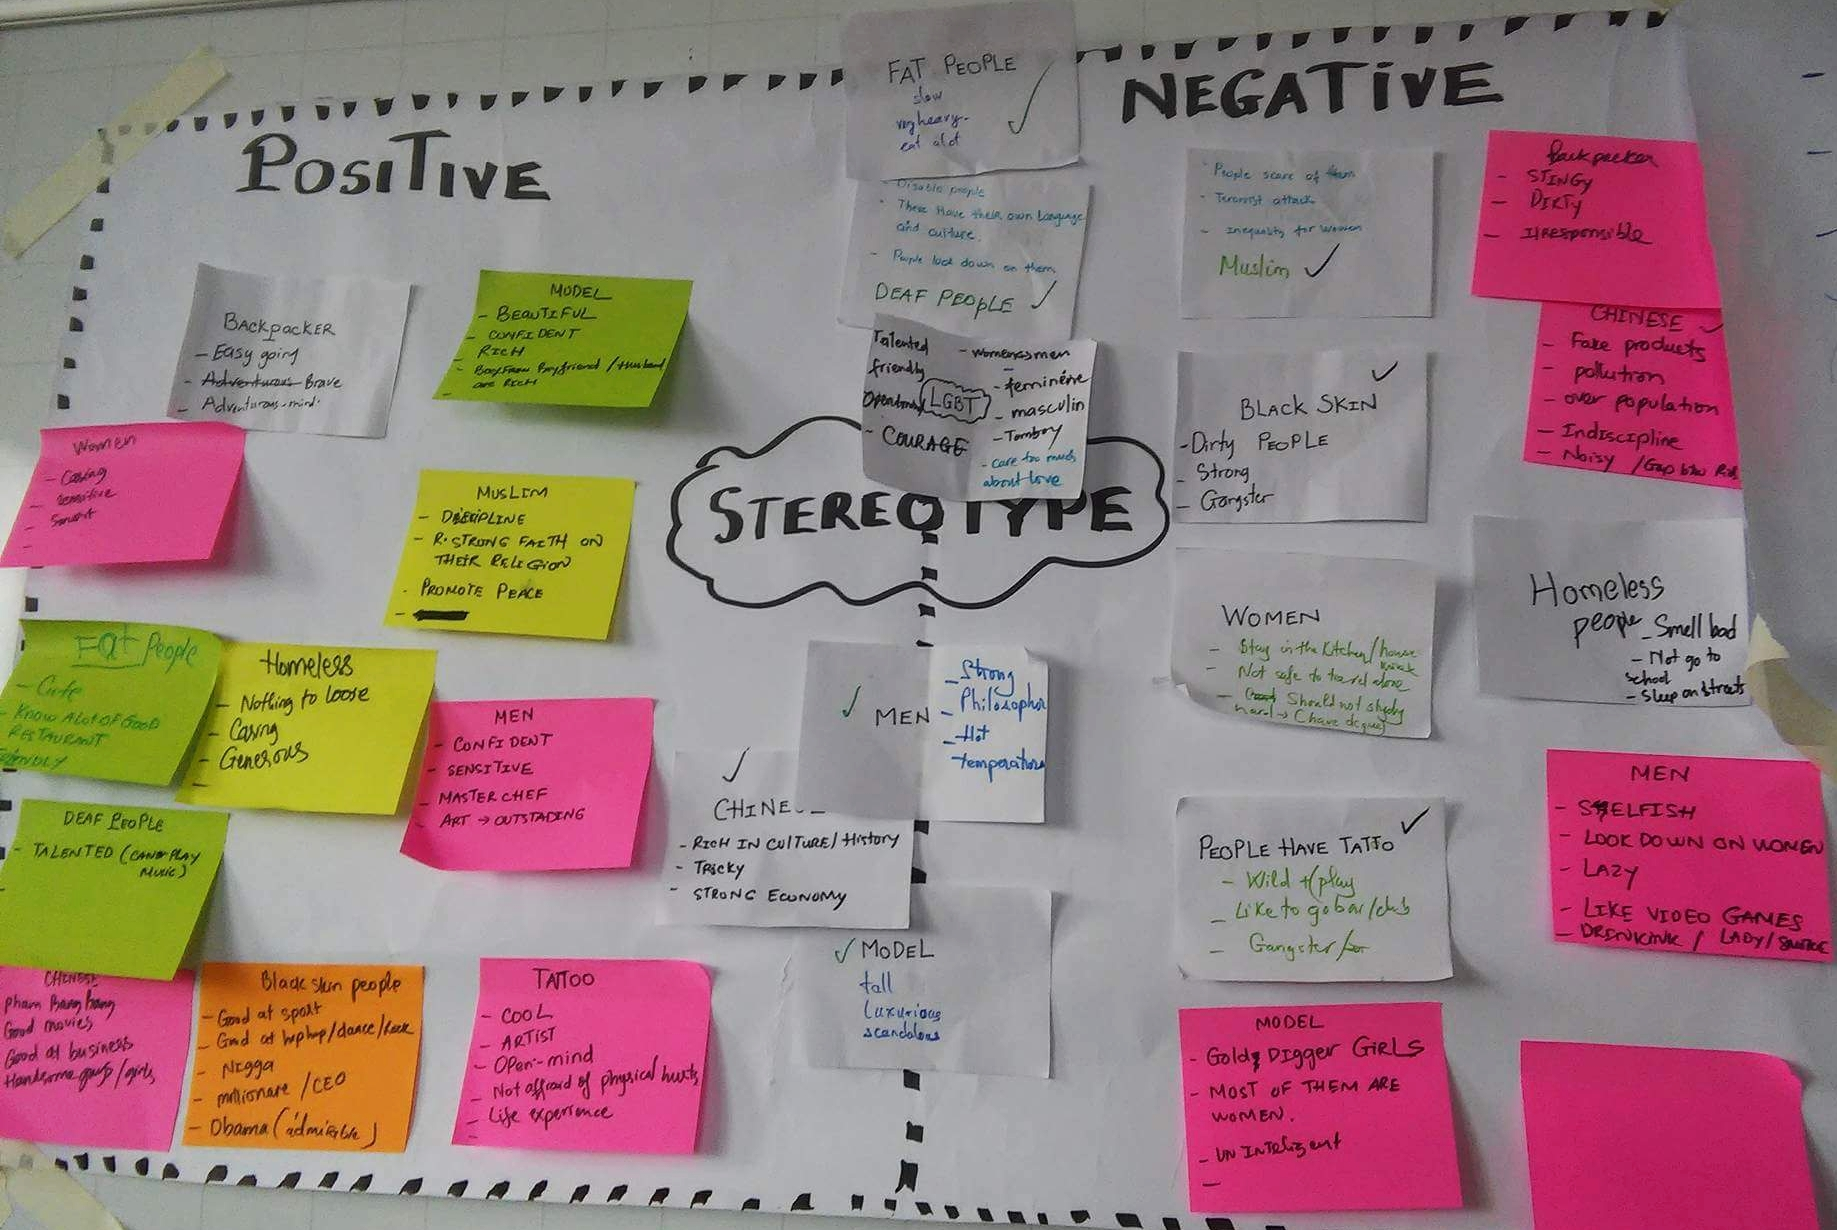 After the discussions, we realized that each of us already had some stereotypes about certain group of people in our mind.